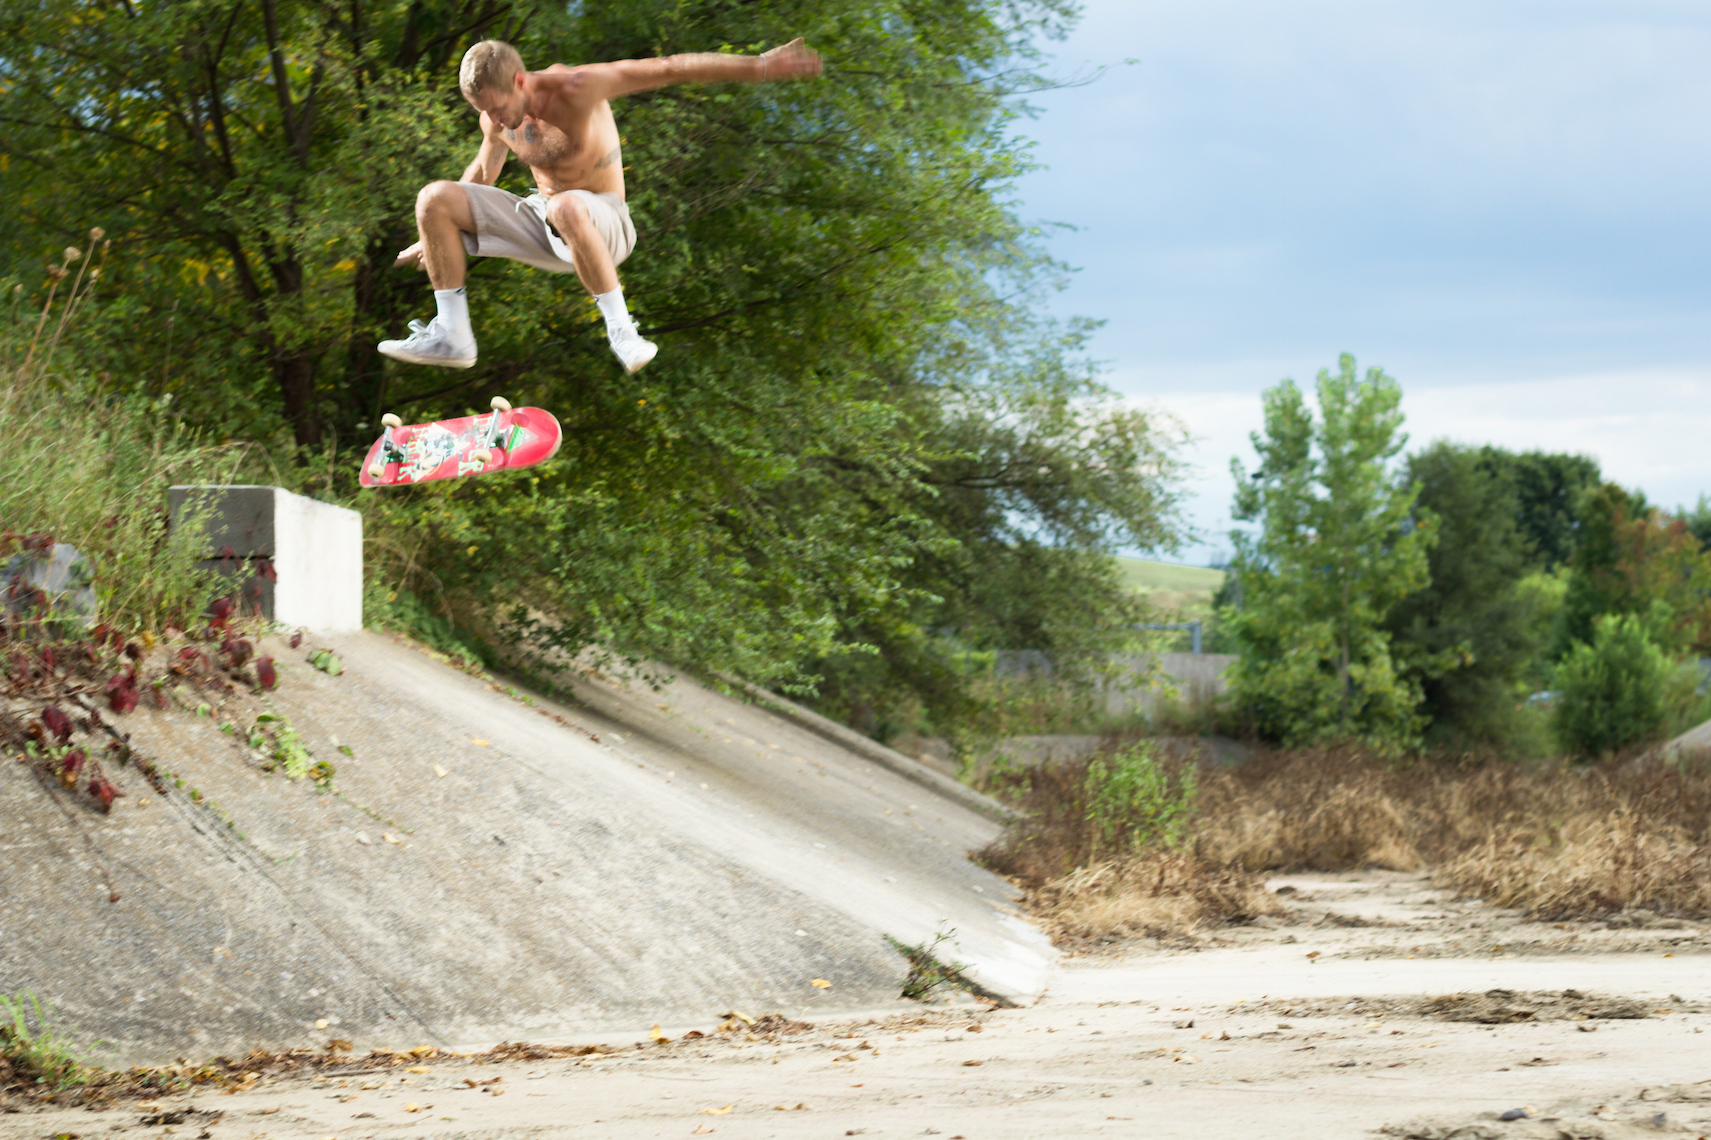 Mike Smith Kickflip Ditch copy